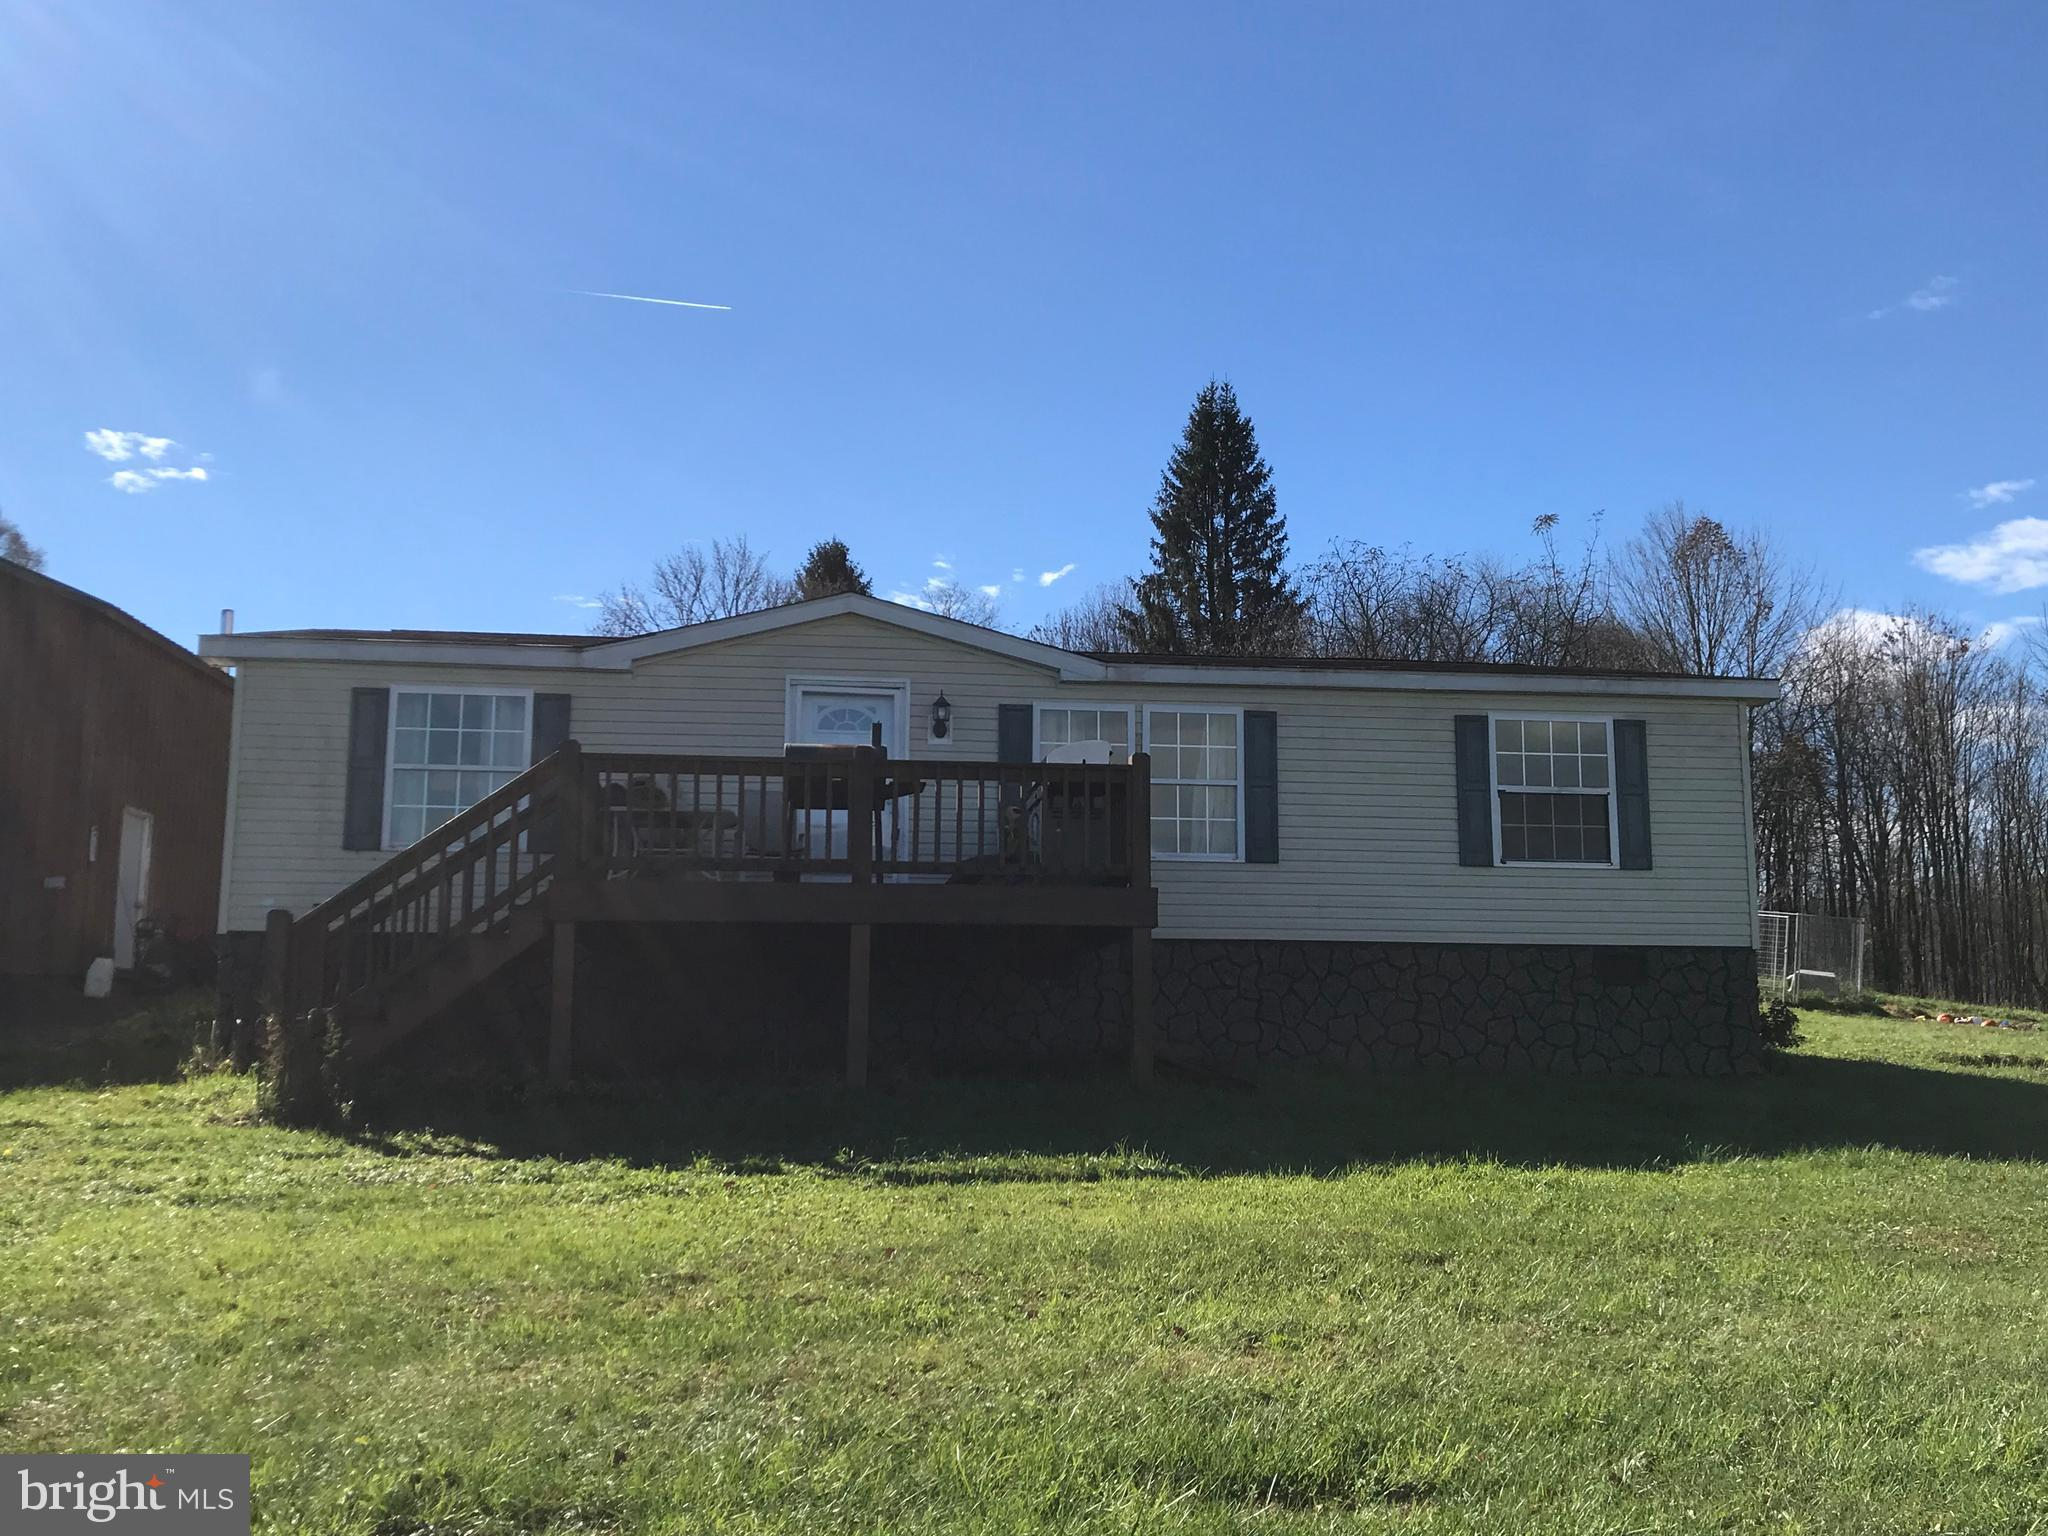 891 CATHEDRAL WAY, AURORA, WV 26705